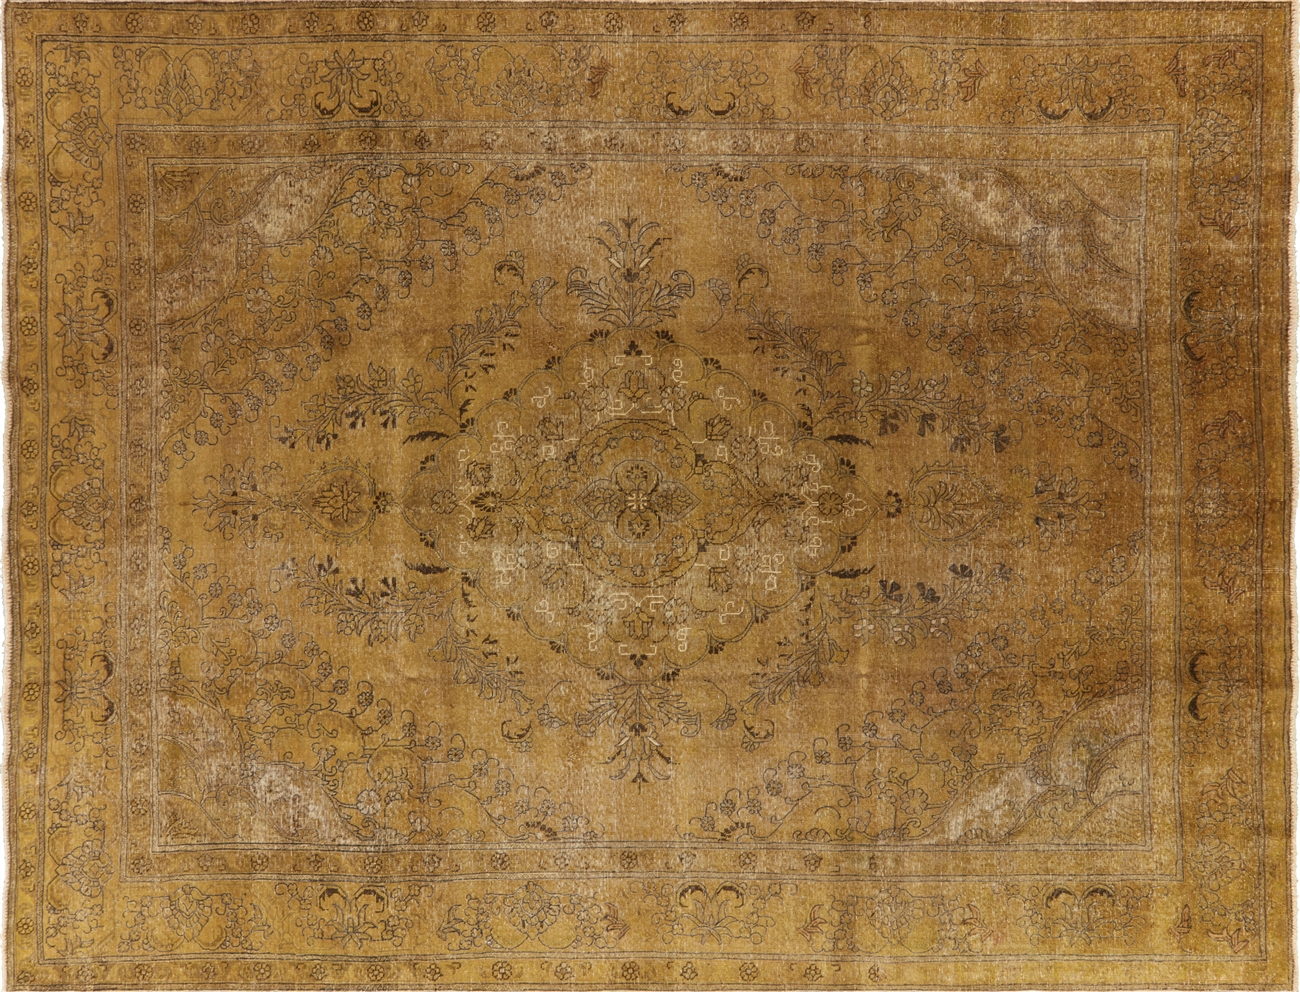 Grand View Larger Photo Persian Orential Overdyed Hand Knotted Wool Area Rug Wool Area Rugs 7x9 Wool Area Rugs Near Me houzz-02 Wool Area Rugs